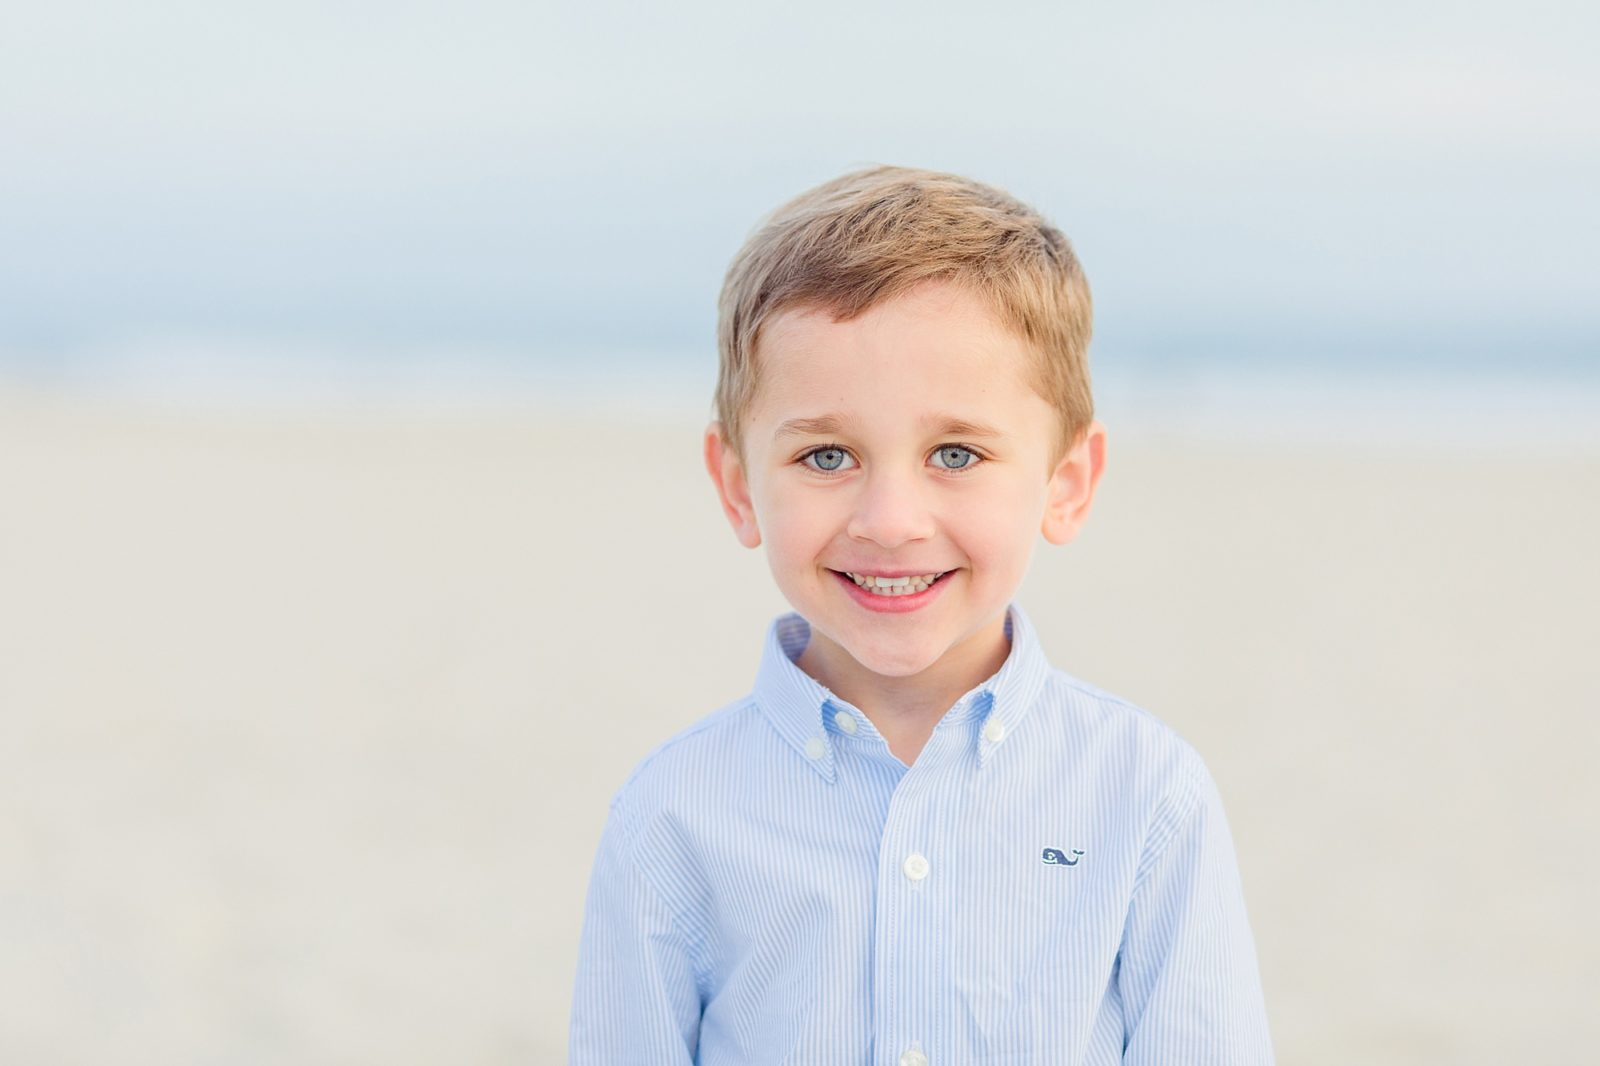 Family Photographer San Diego | Child Photographer Coronado